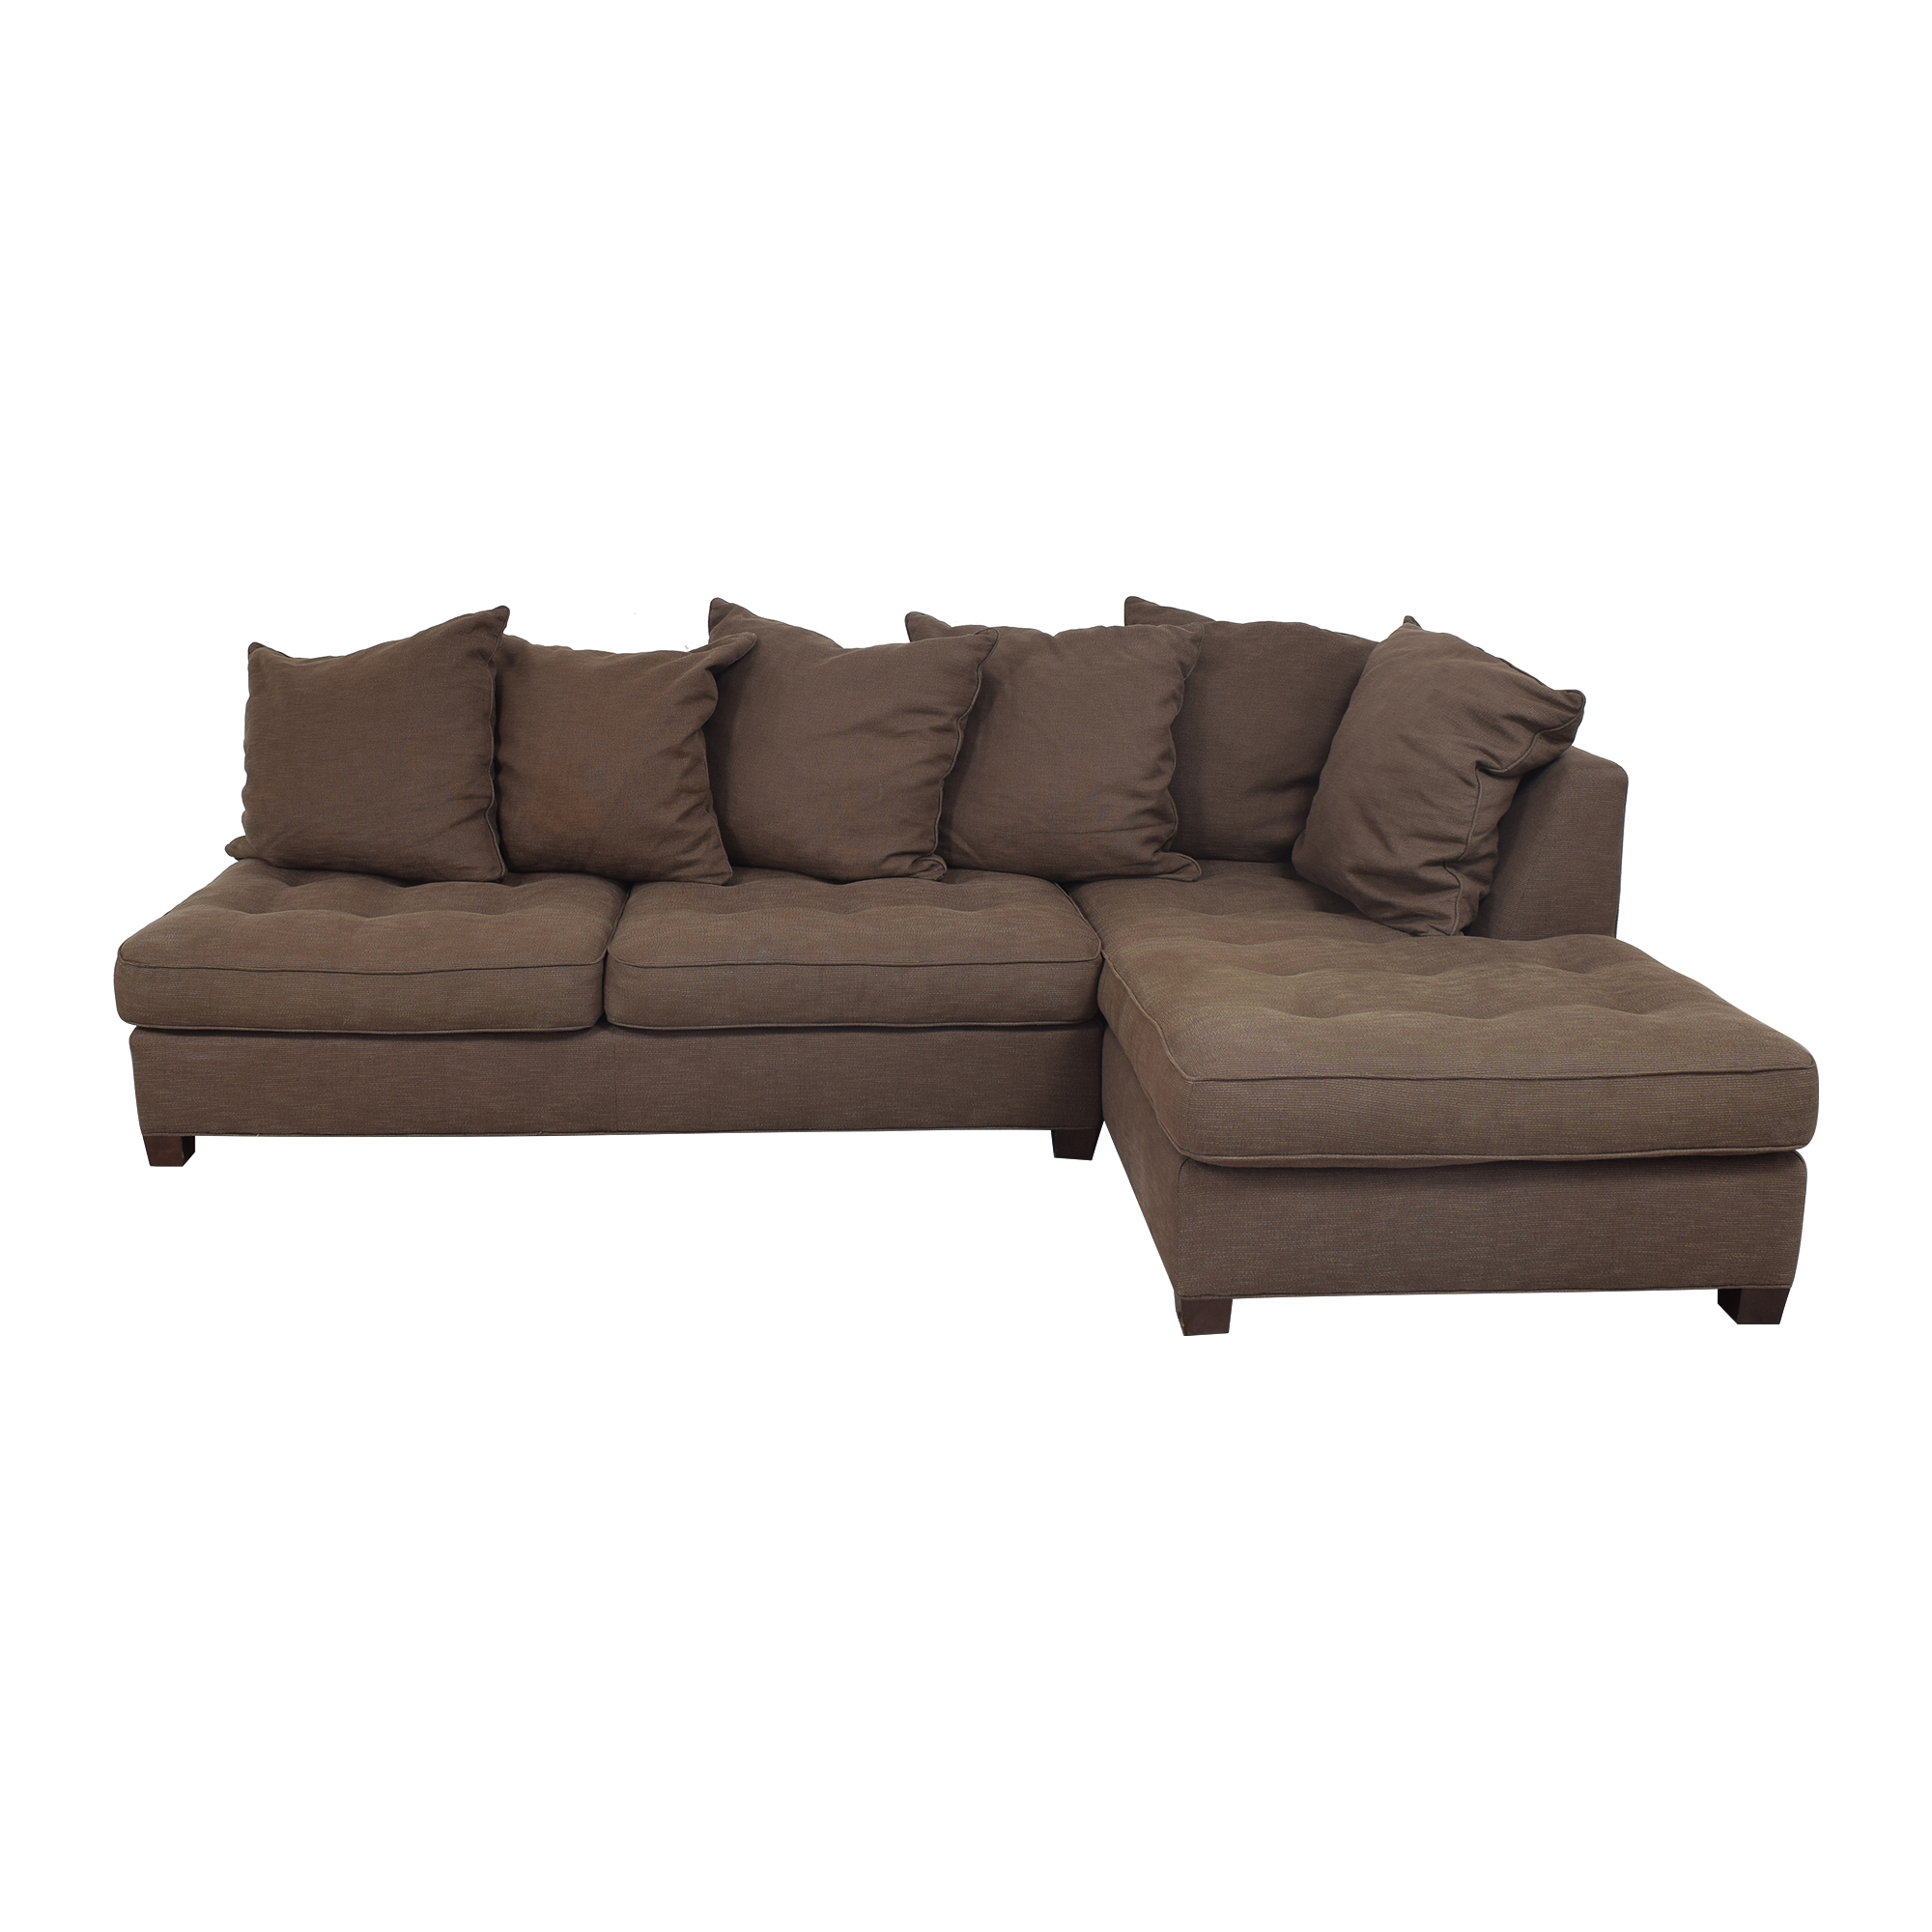 Pottery Barn Pottery Barn Sectional Sofa with Chaise ma